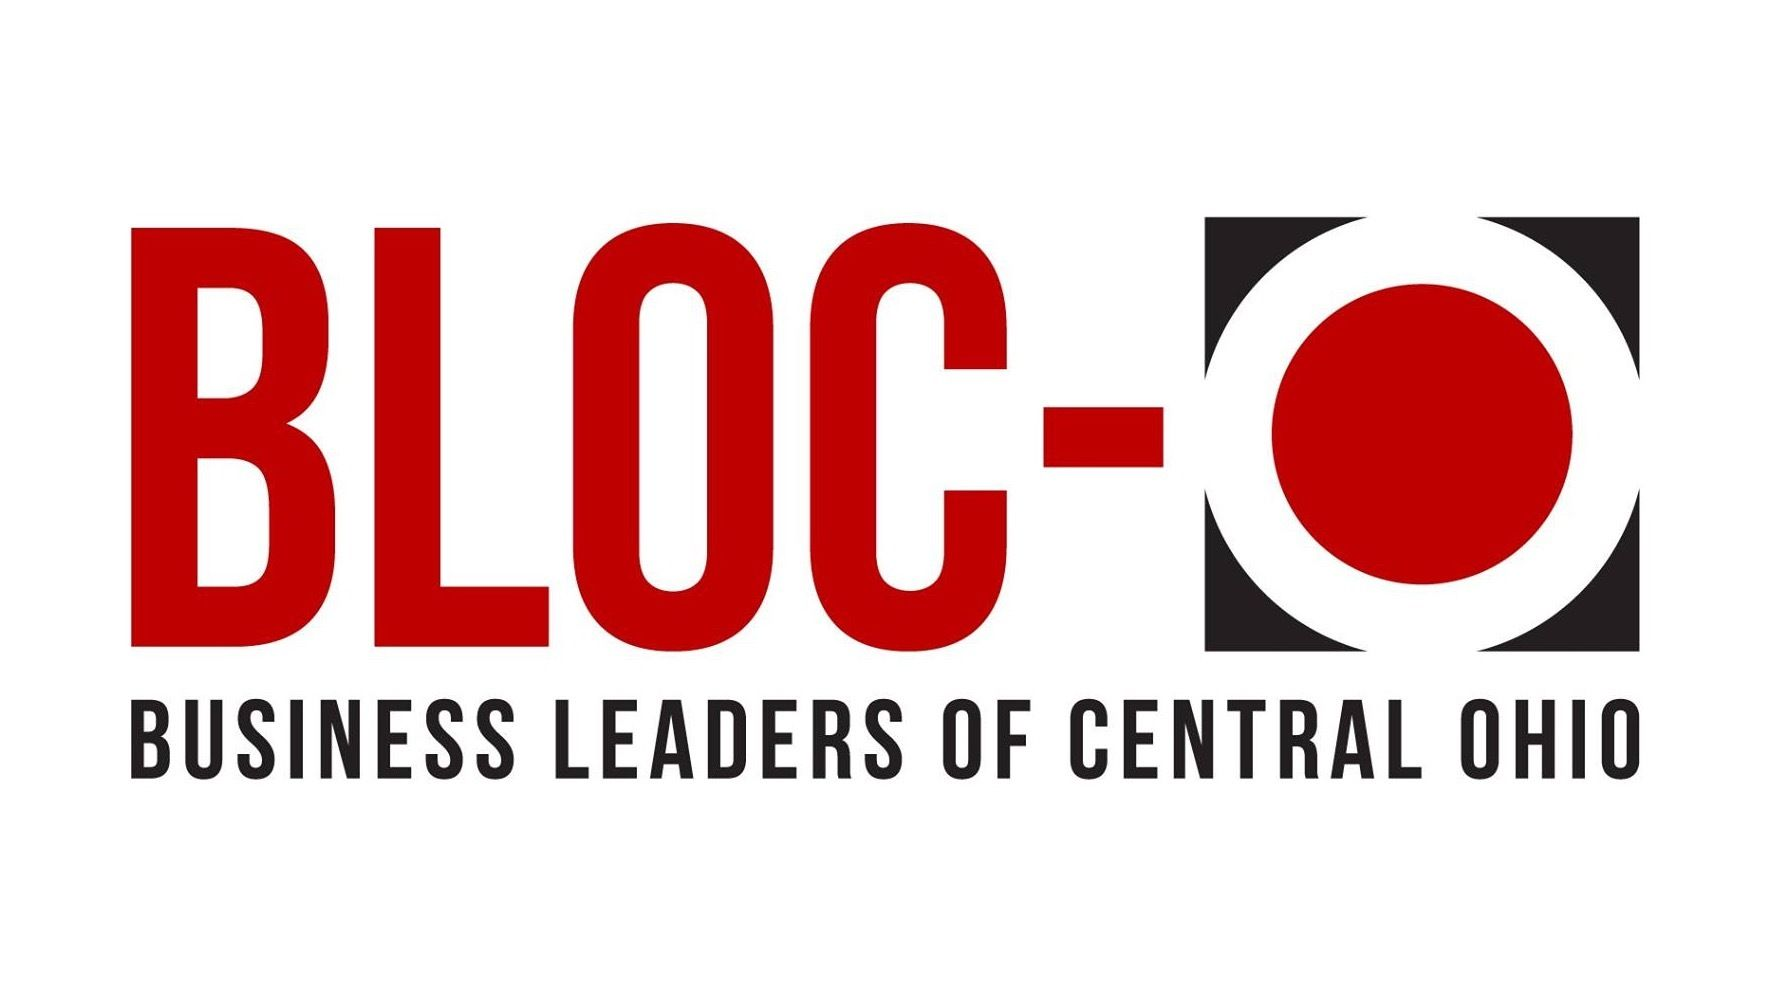 Business Leaders of Central Ohio (BLOC-O)